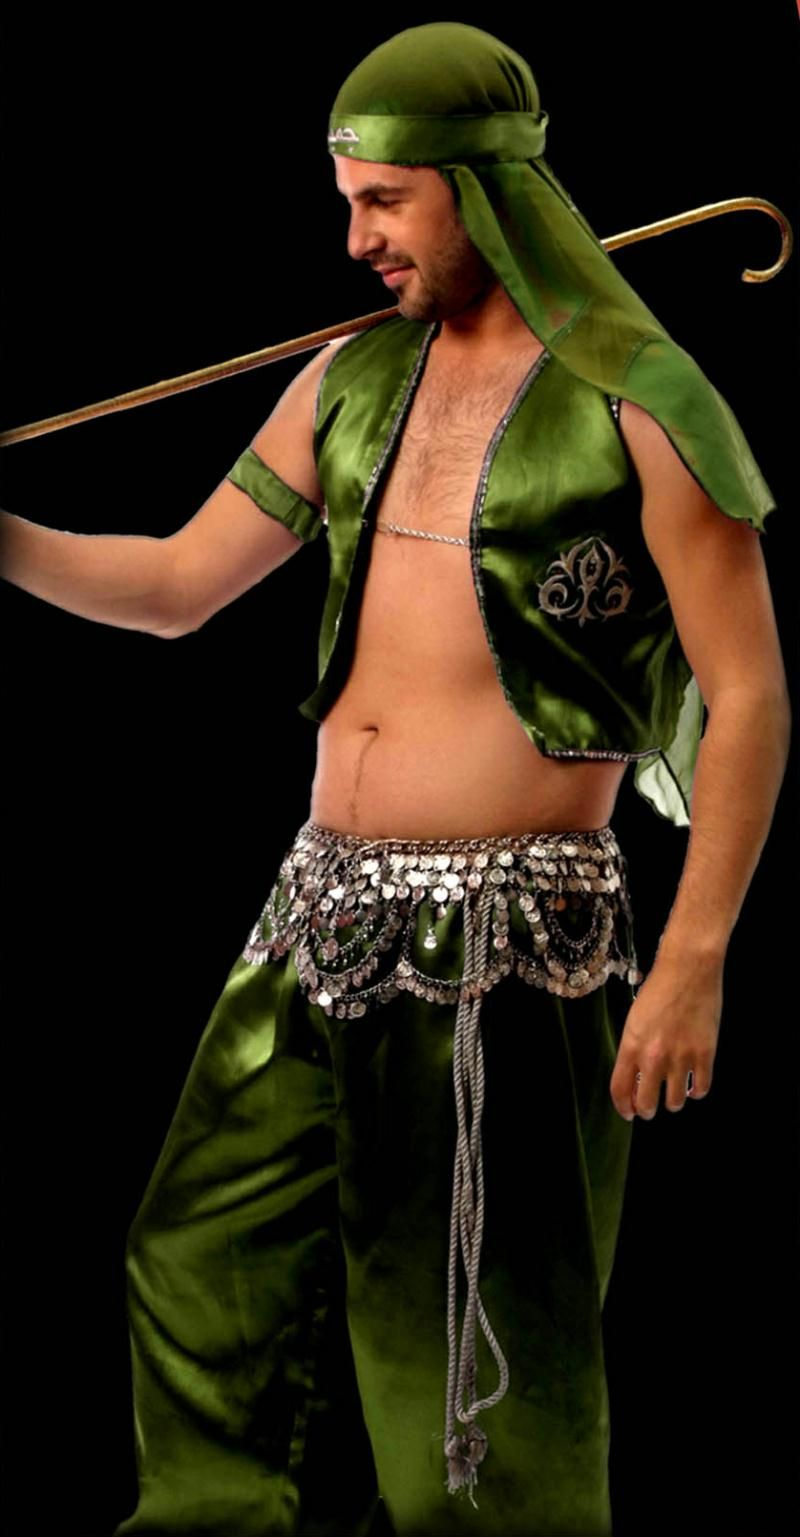 142f8288d Professional Belly Dance Artist Jamil - yes, there are most def. male belly  dancers :-)